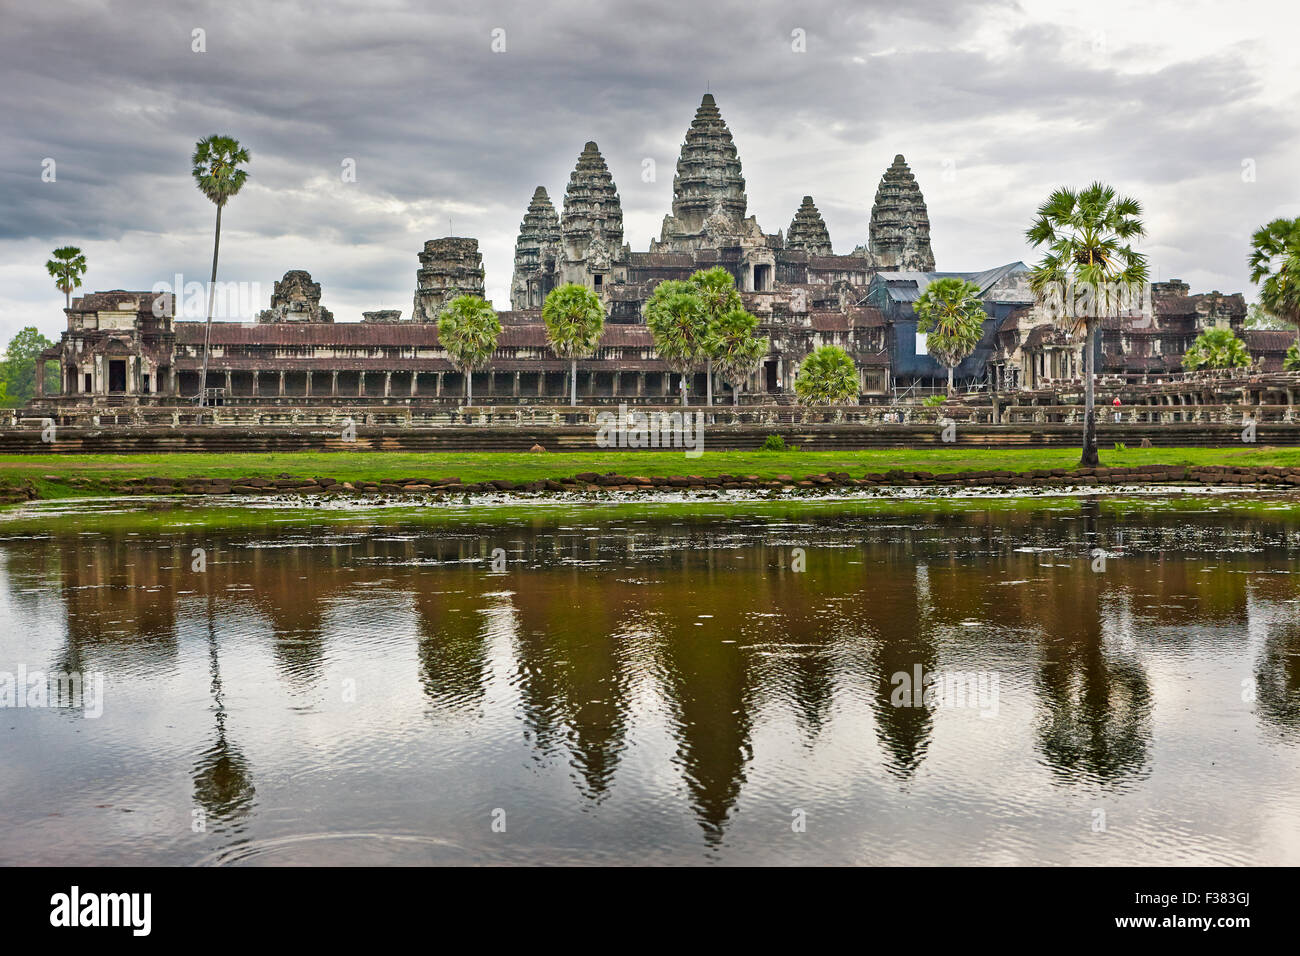 Angkor Wat temple. Angkor Archaeological Park, Siem Reap Province, Cambodia. - Stock Image